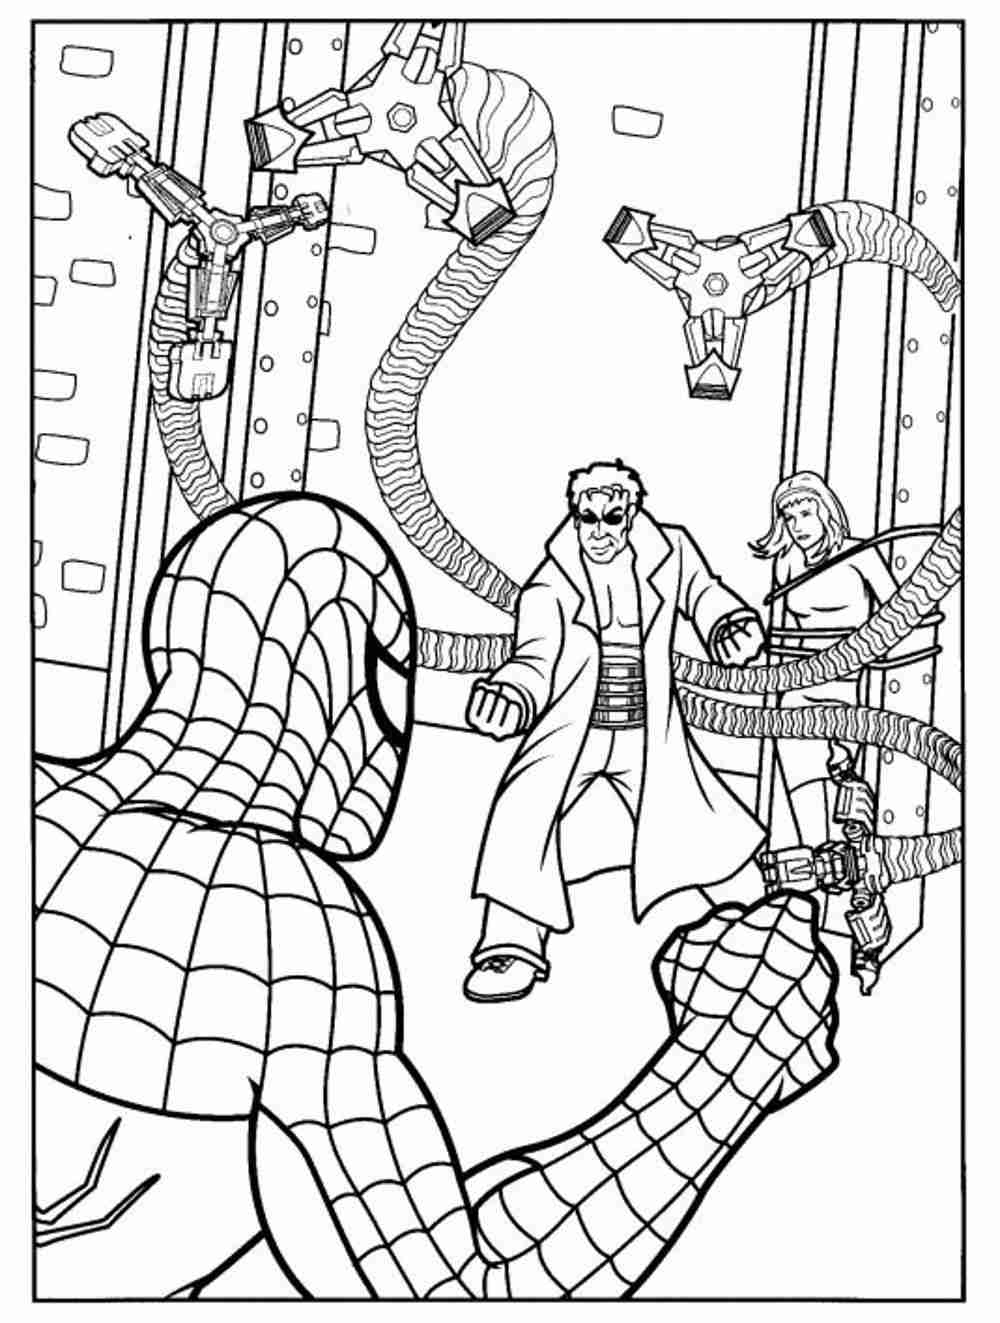 coloring spiderman color spiderman coloring pages free download on clipartmag color coloring spiderman